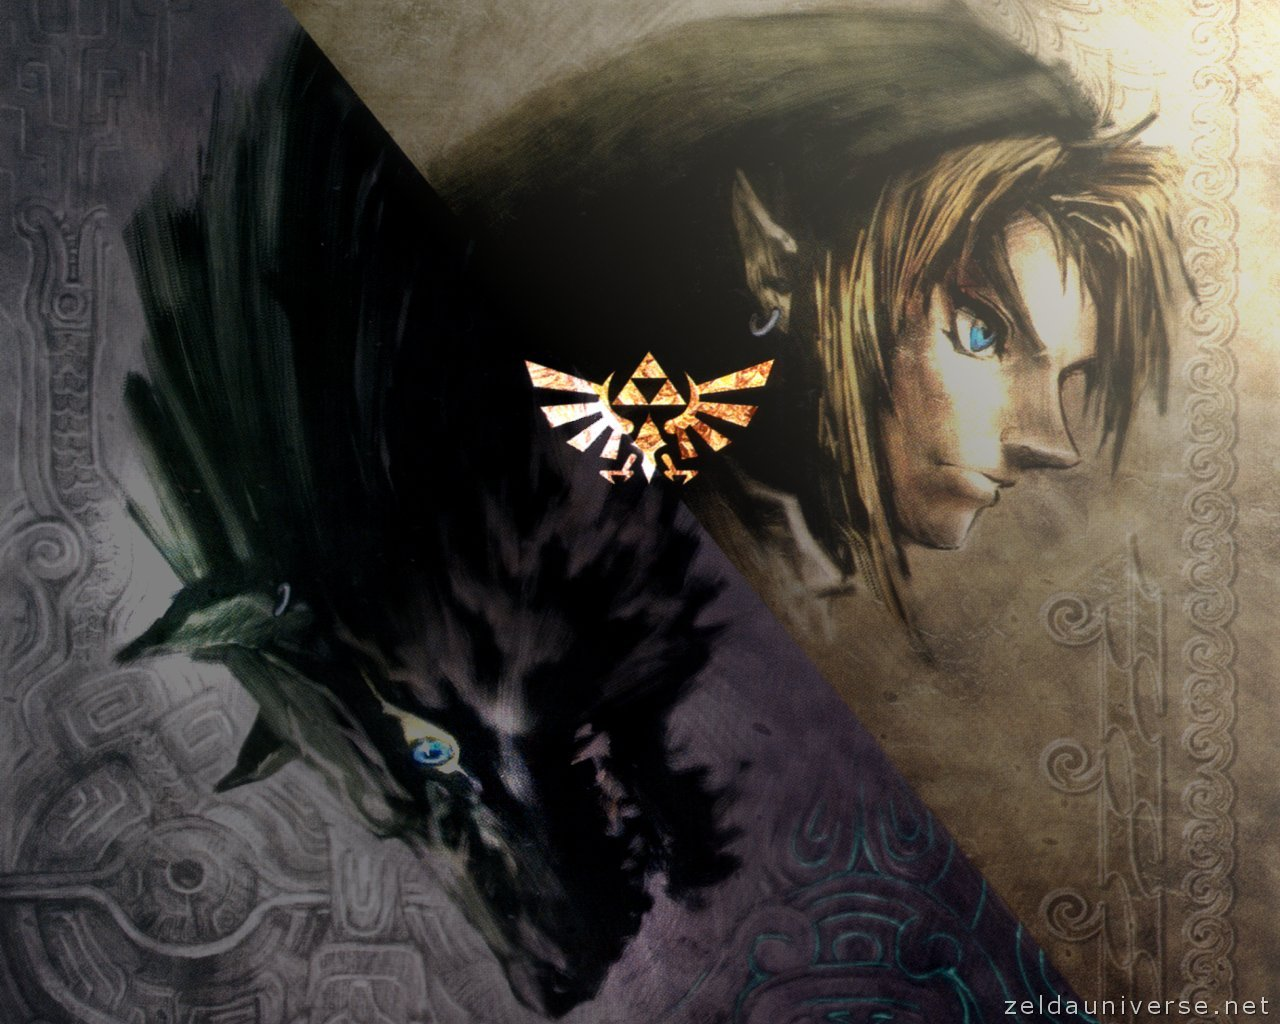 Cosas Random The Legend of Zelda Twilight Princess 1280x1024